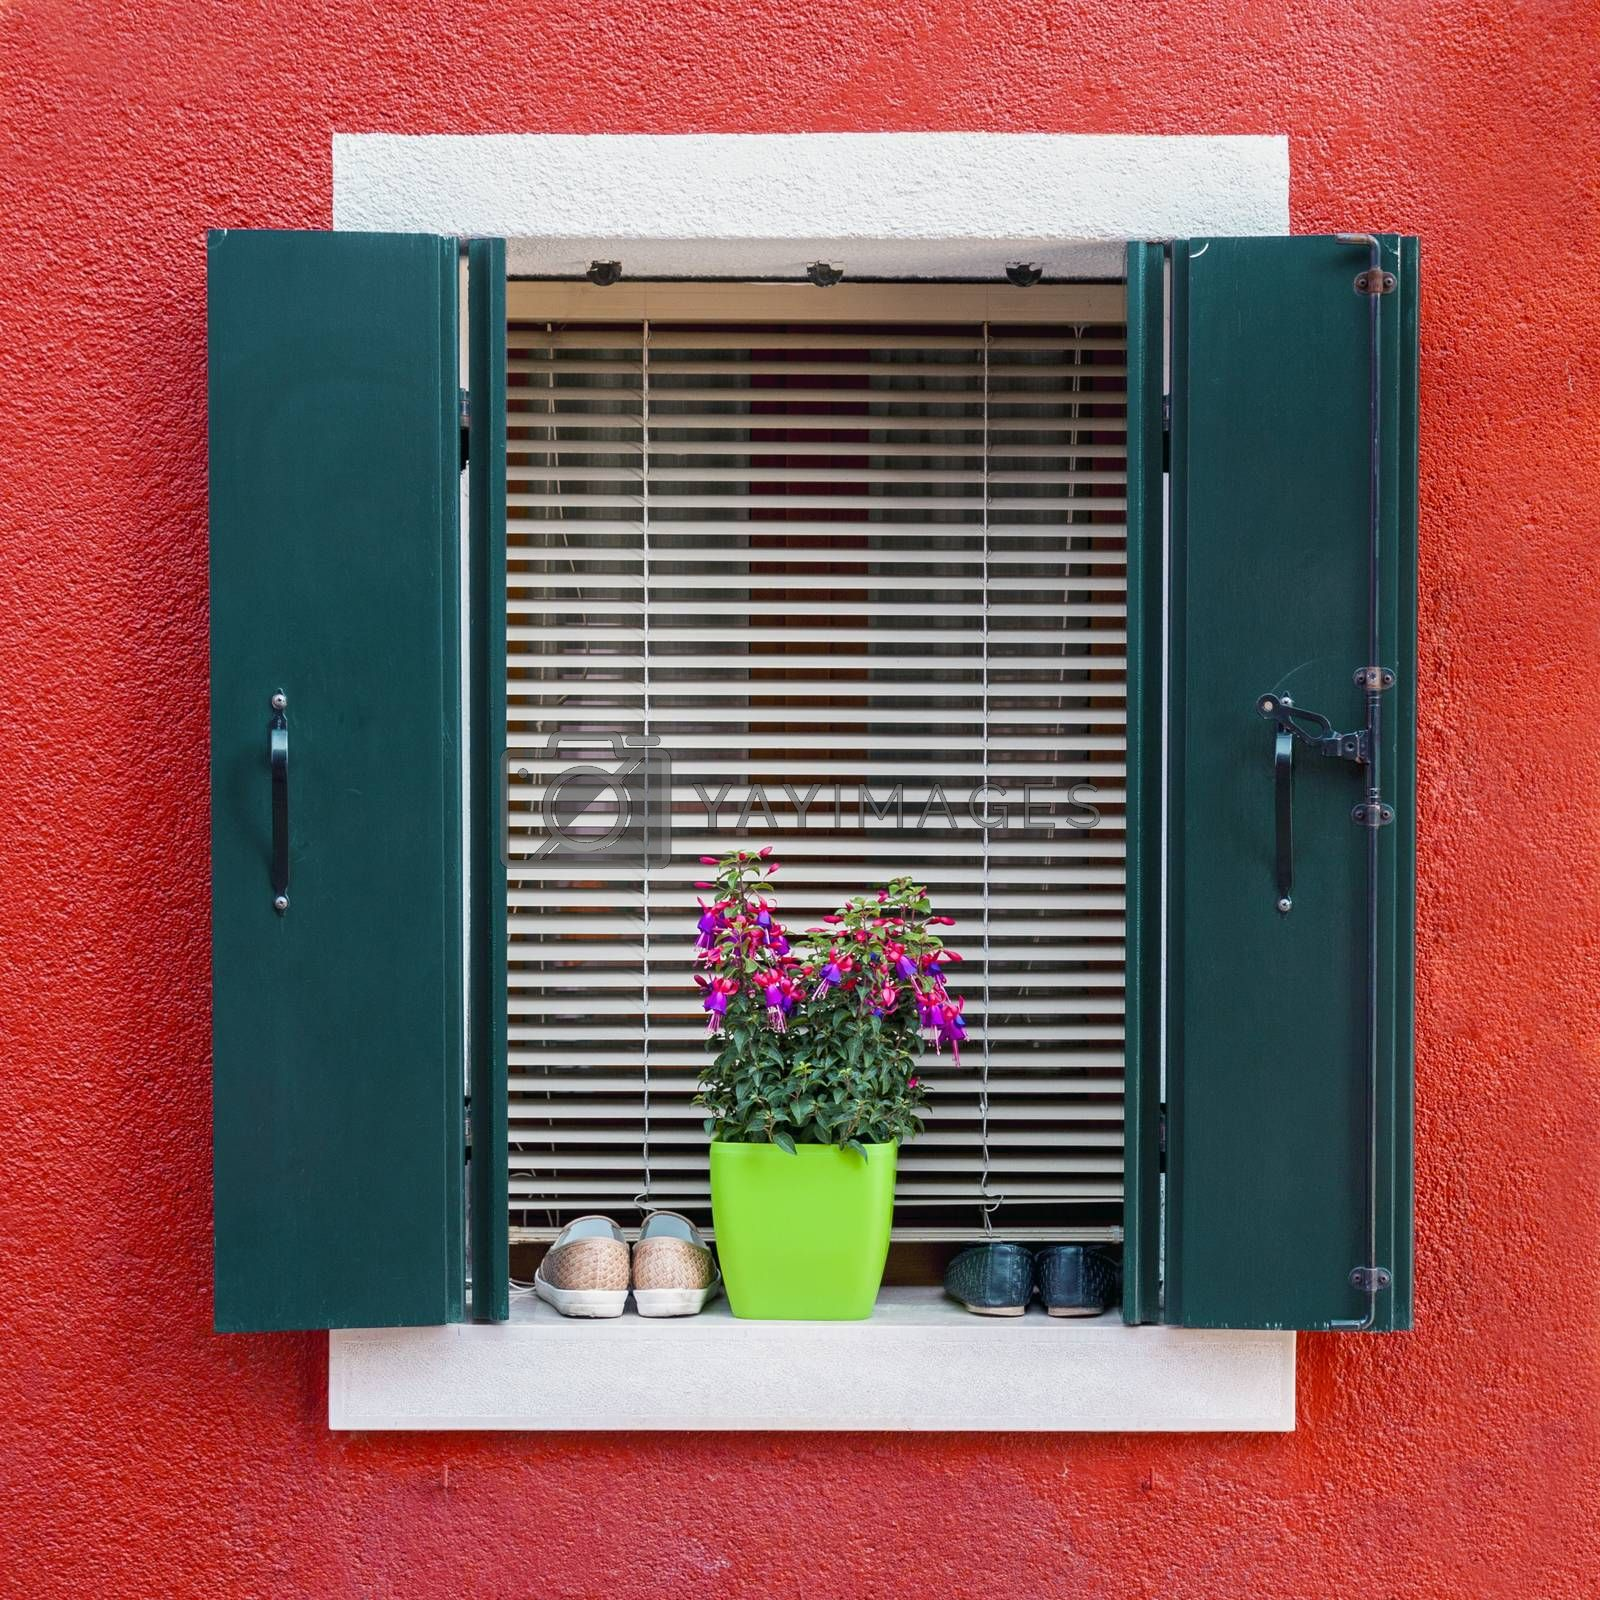 Traditional colorful residential house window with opened shutters and flower pot in venetian island of Burano